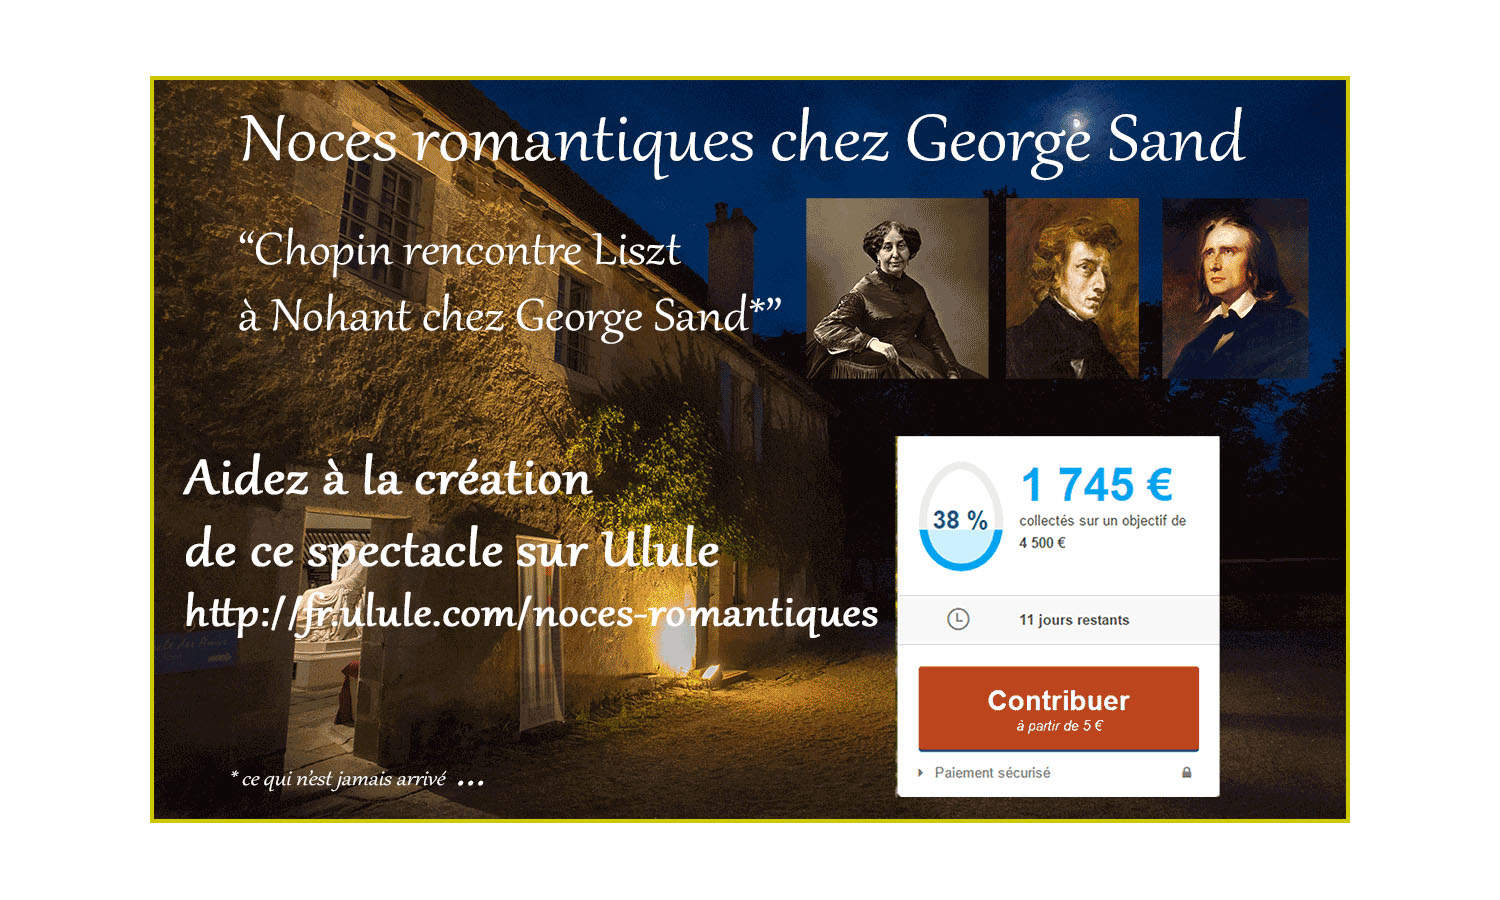 rencontre chopin georges sand